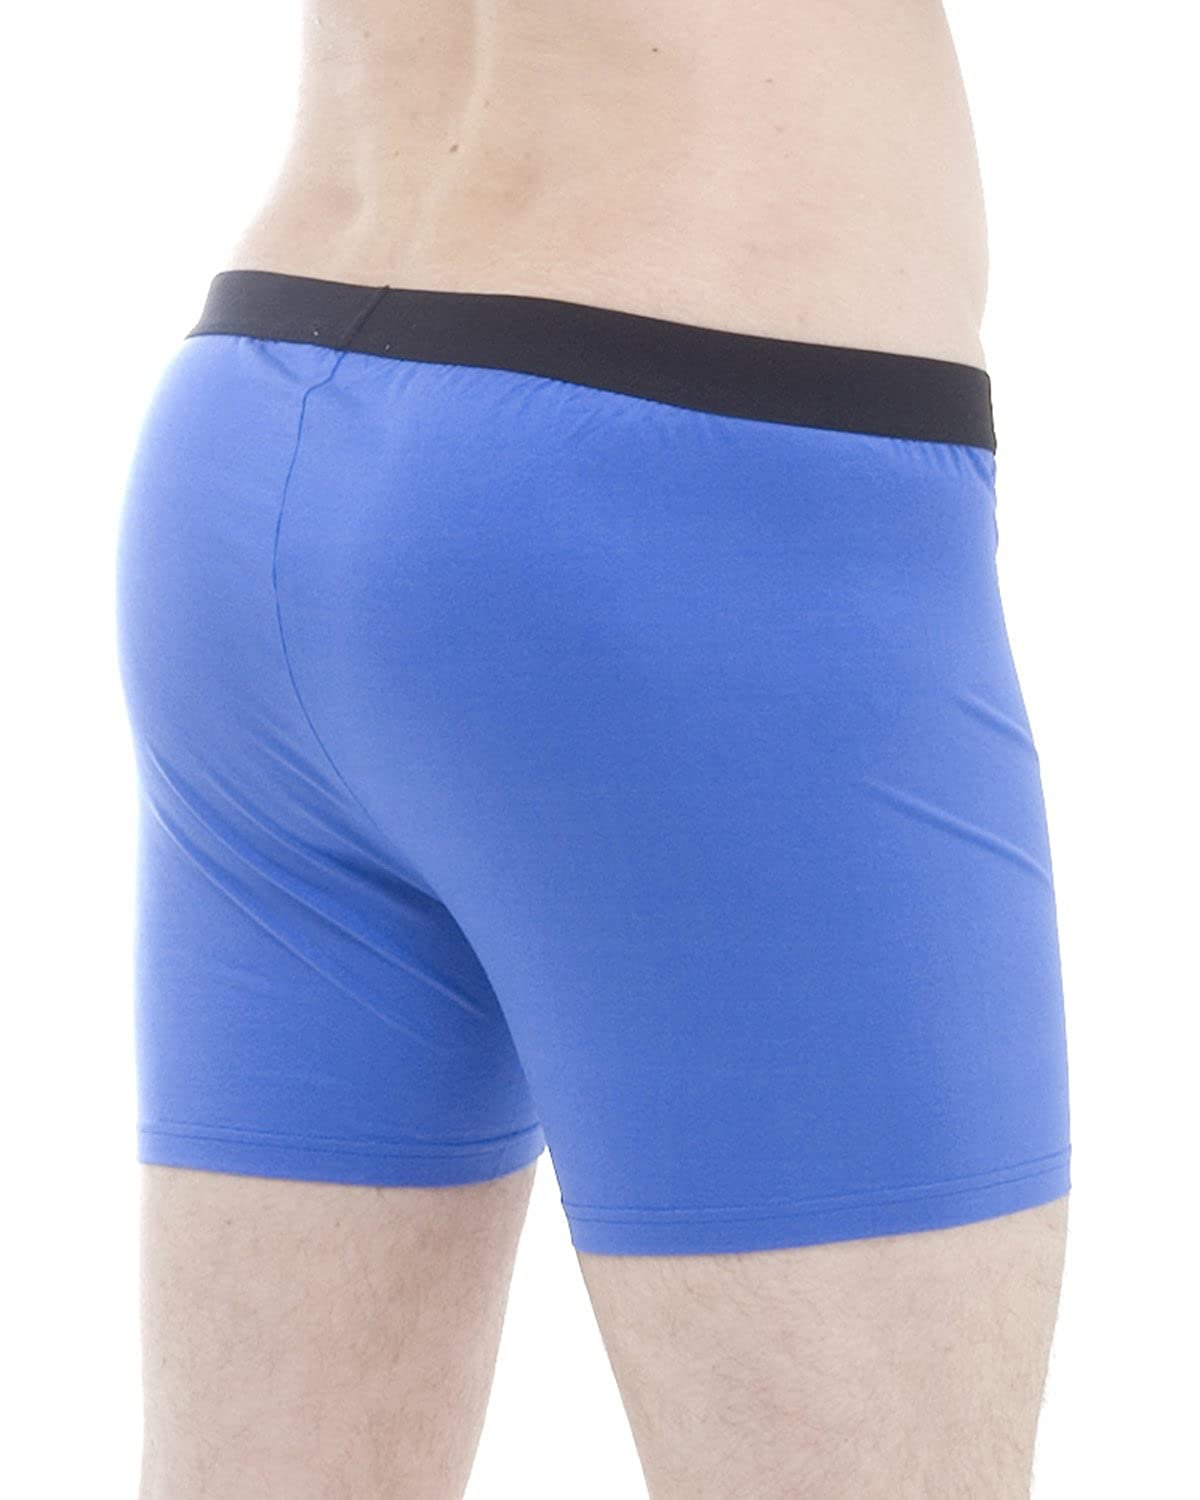 Set of 3 silk spandex trunks Multi-Pack.